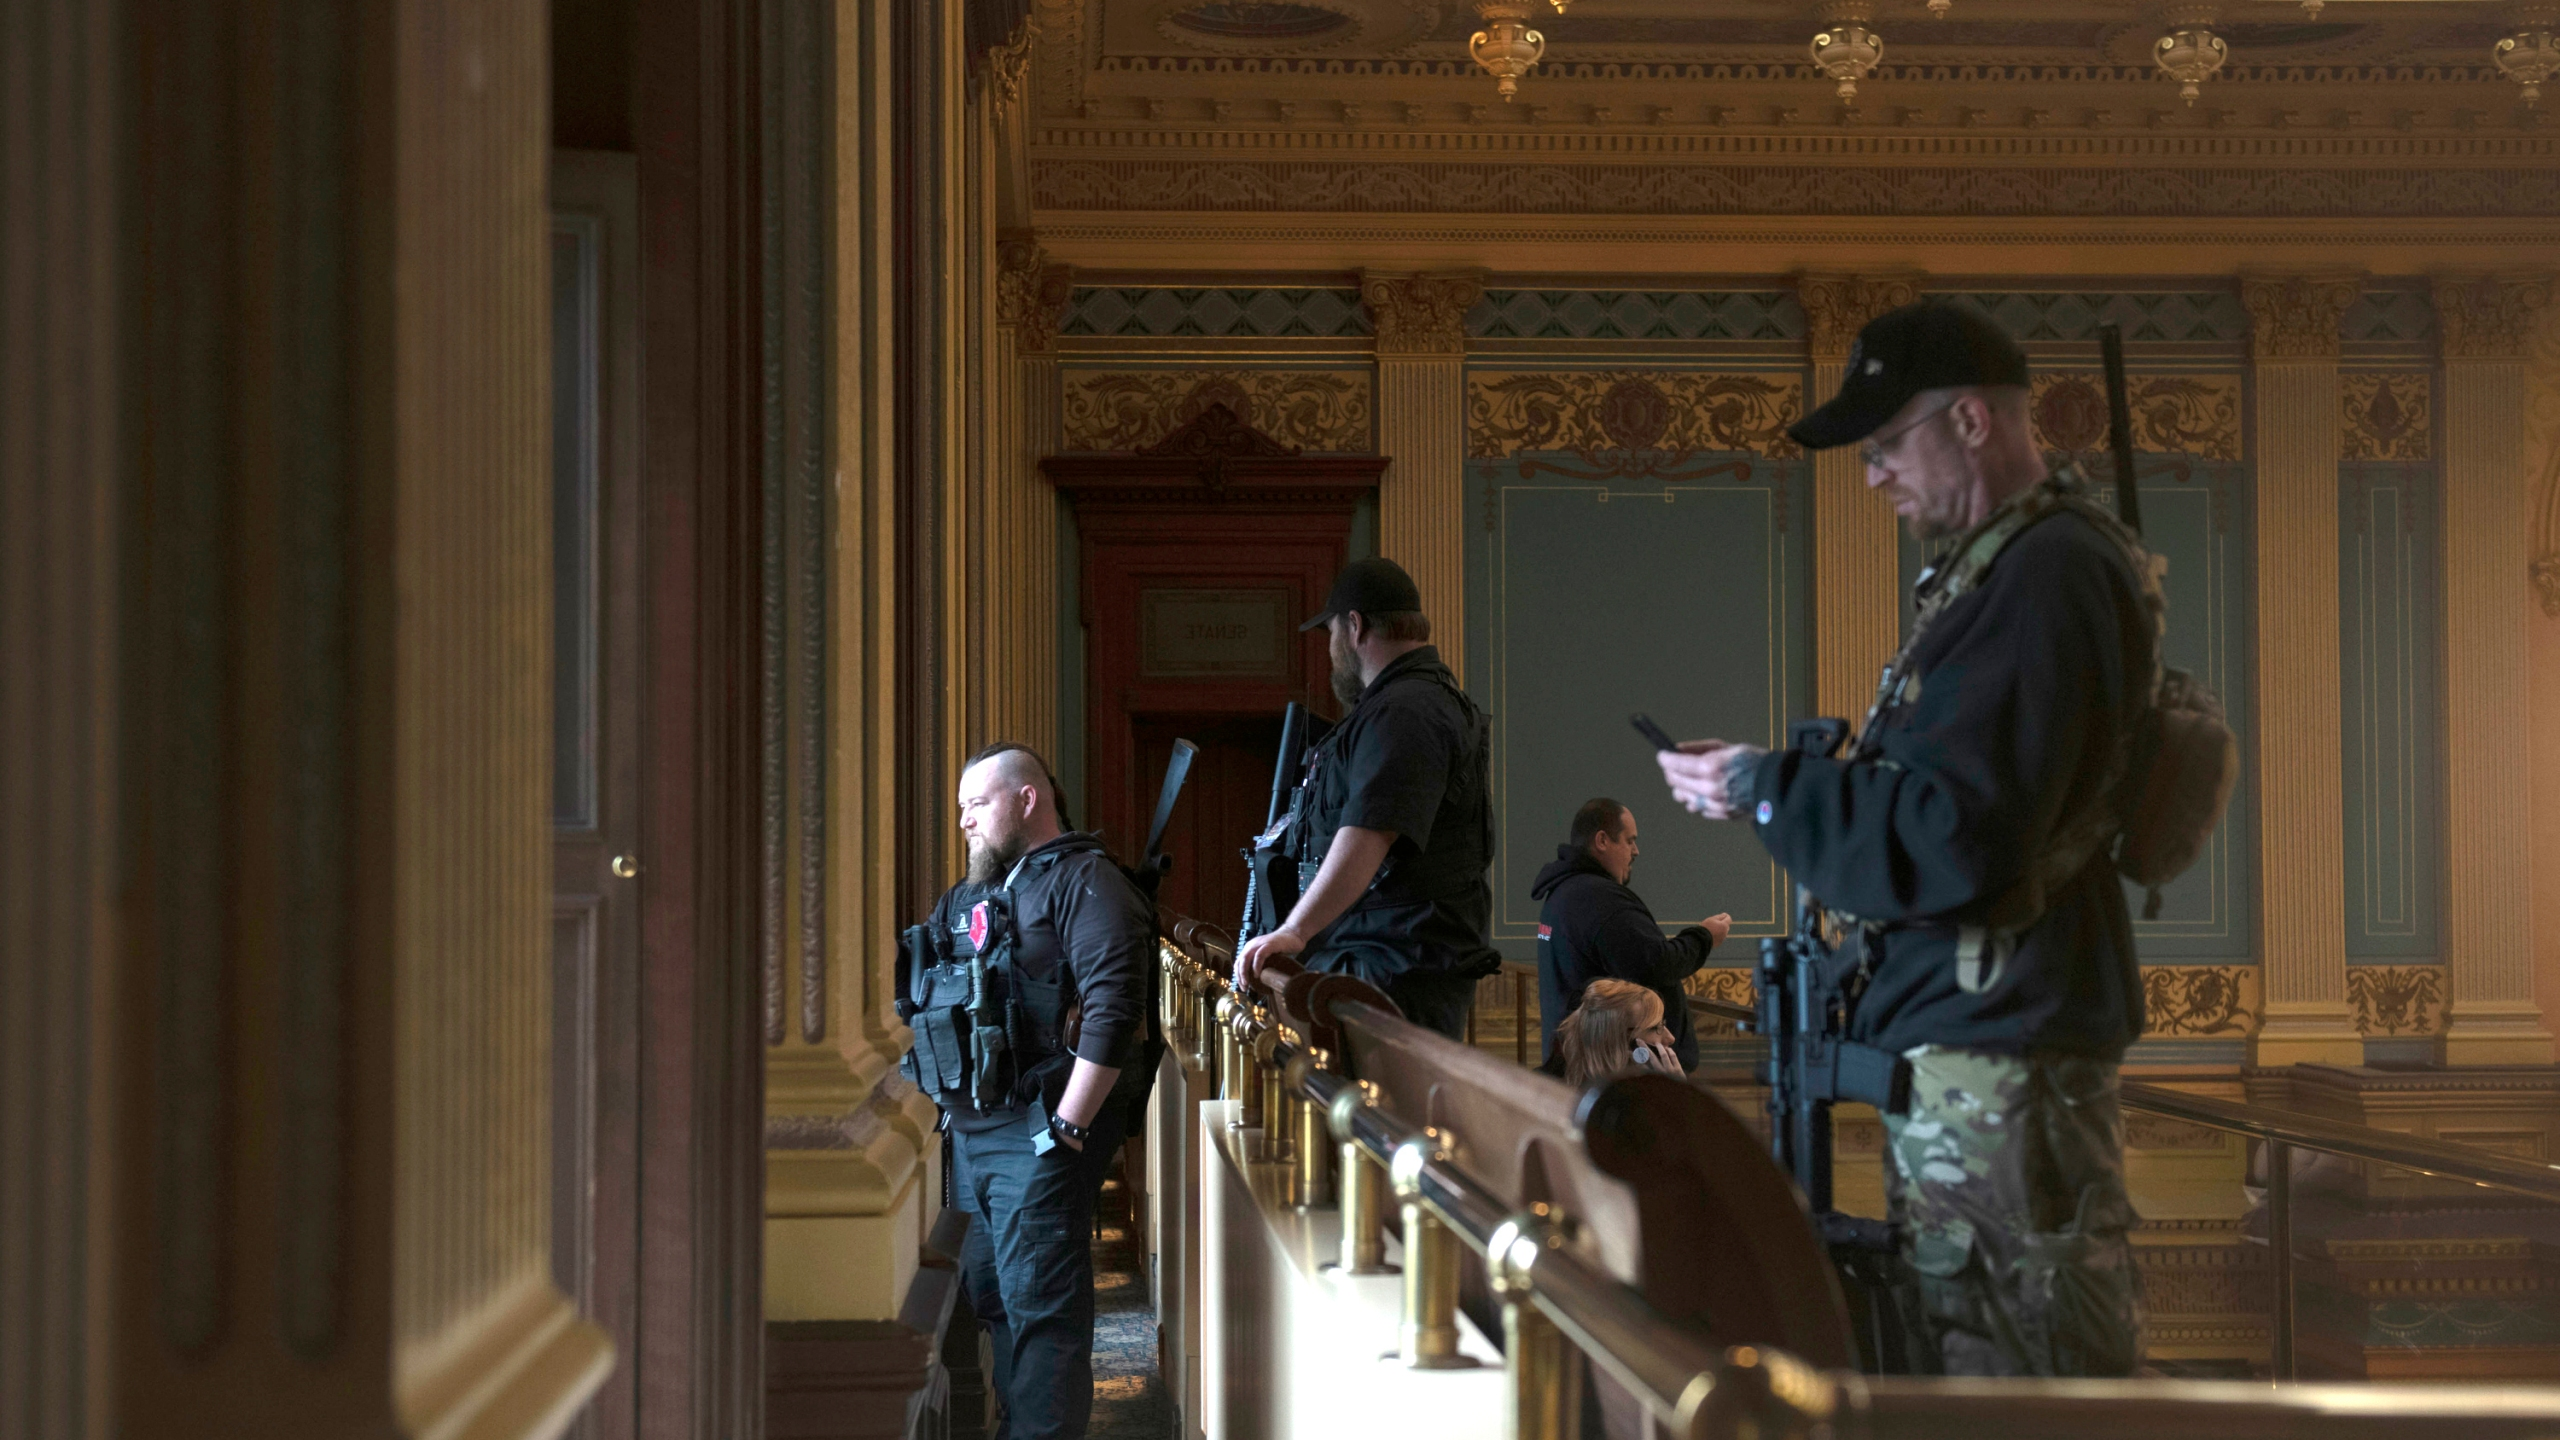 In this April 30, 2020, file photo, armed members of a militia group watch the protest outside while waiting for the Michigan Senate to vote at the Capitol in Lansing, Mich. Michigan has banned the open carry of guns in the state Capitol a week after an armed mob rioted in the U.S. Capitol and following an attempt to storm the statehouse last year. (Nicole Hester/MLive.com/Ann Arbor News via AP File)